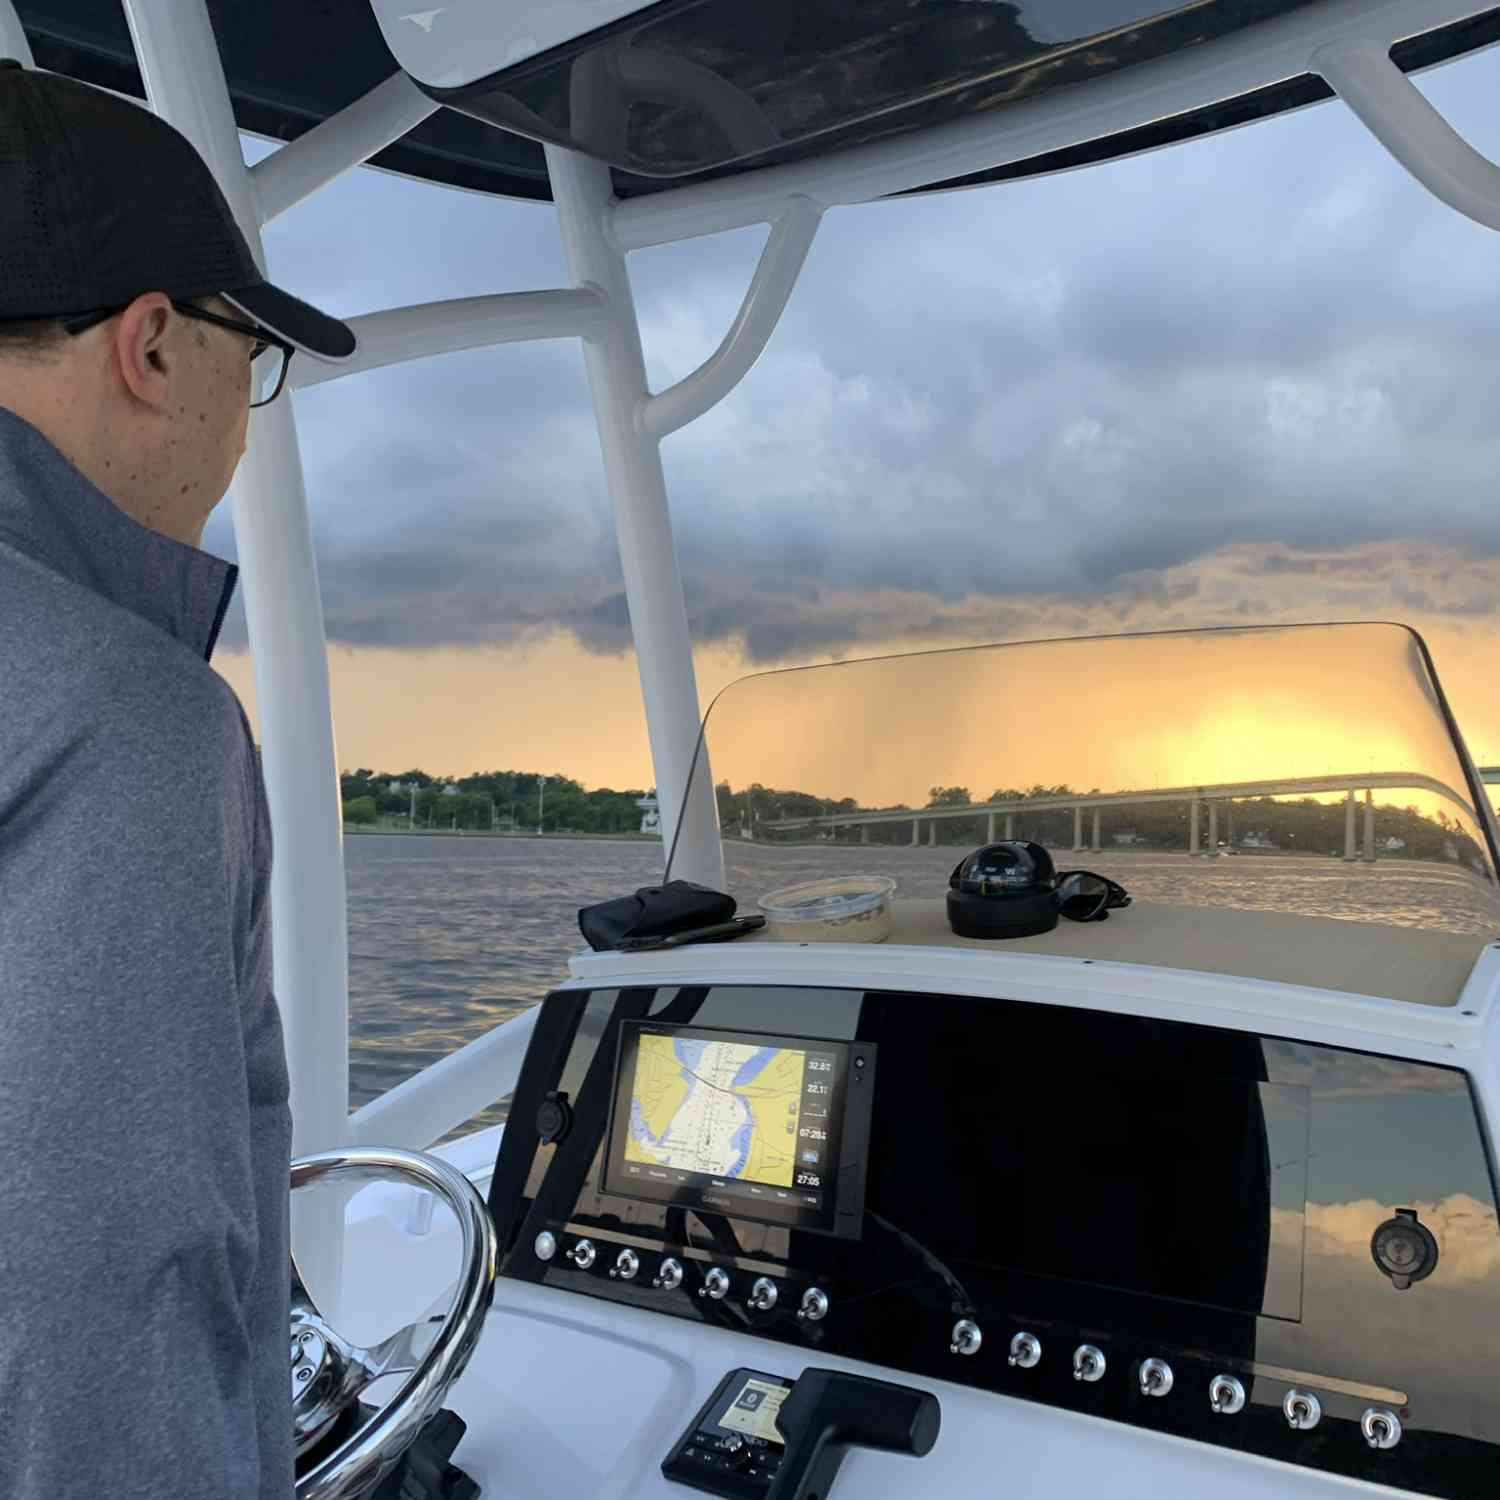 Title: Racing the Storm - On board their Sportsman Heritage 231 Center Console - Location: Severn River, Annapolis. Participating in the Photo Contest #SportsmanJuly2020